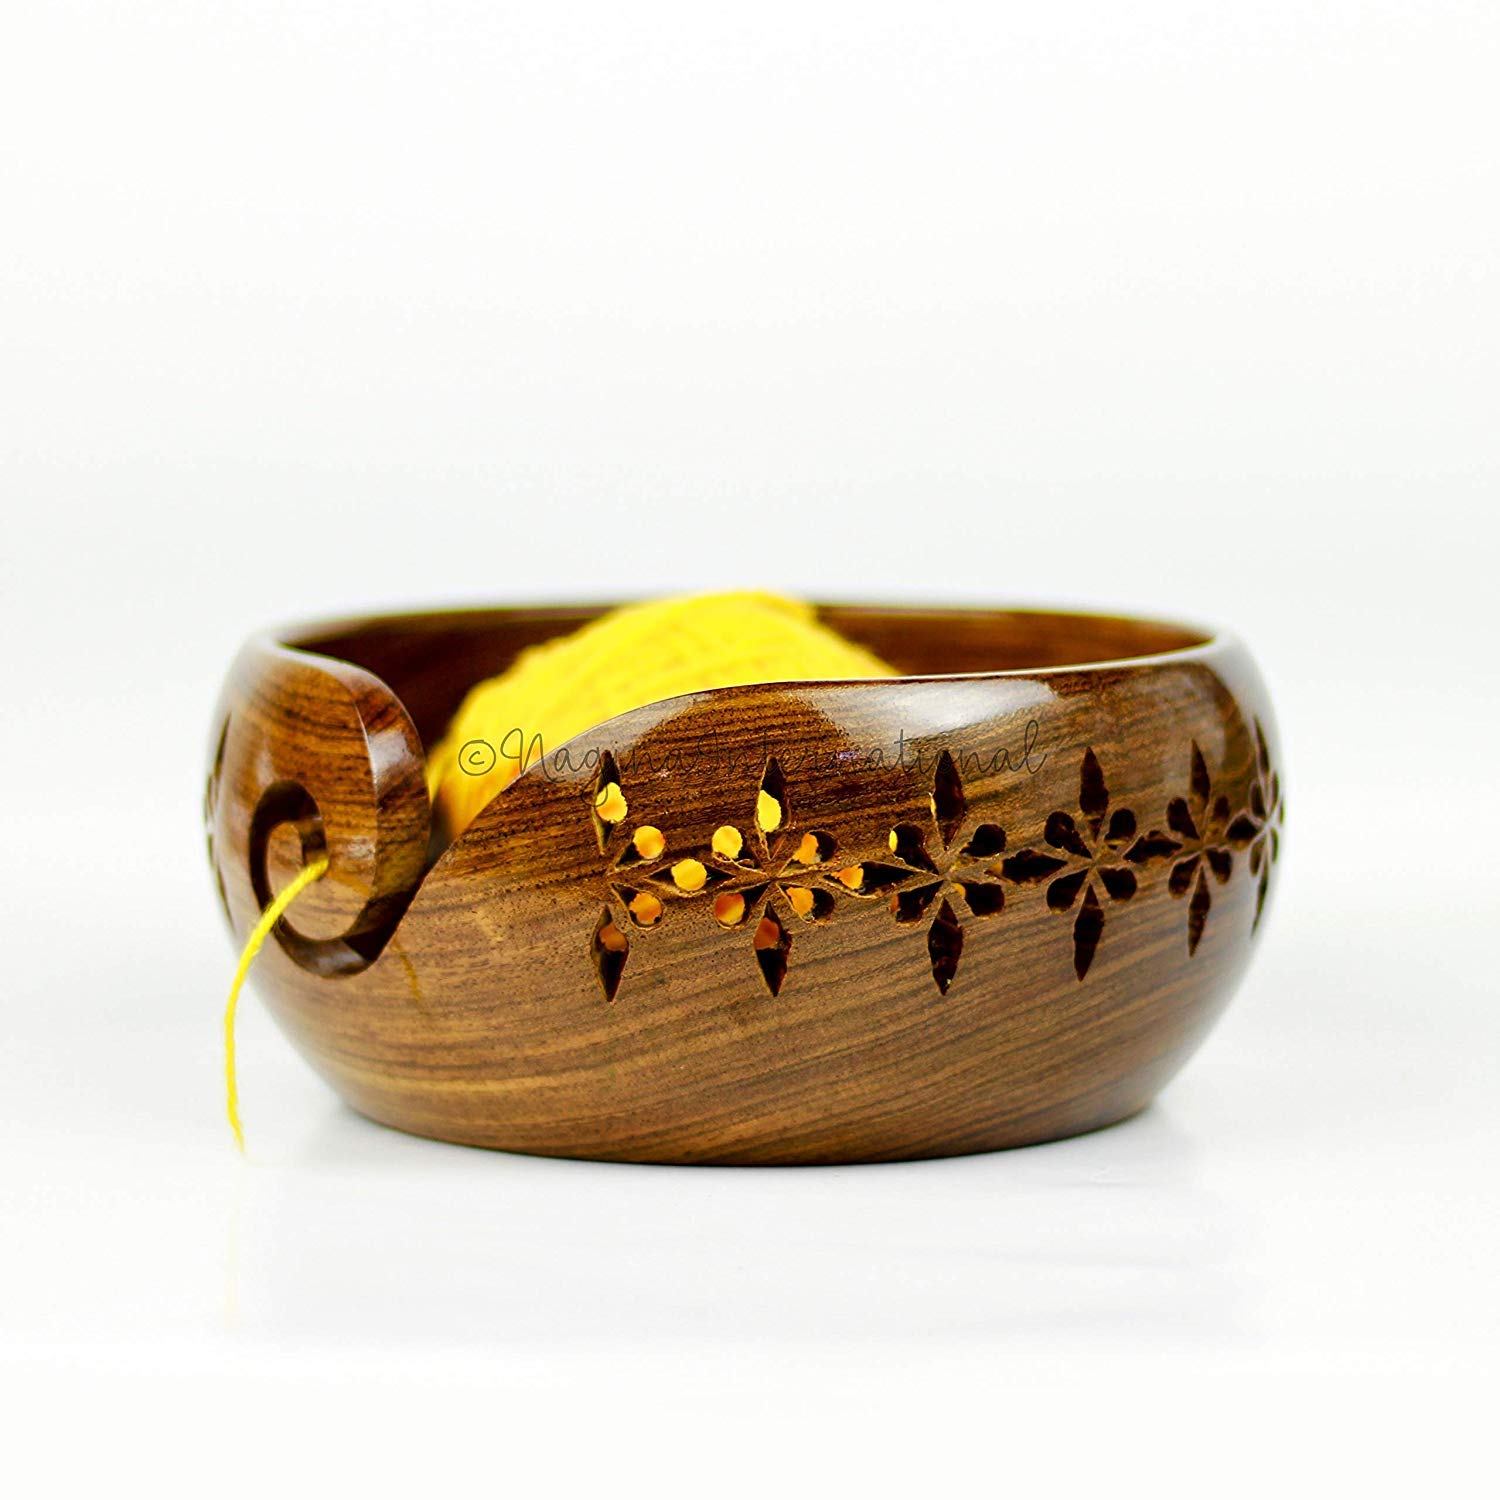 Rosewood Crafted Wooden Yarn Storage Bowl with Carved Holes & Drills | Knitting Crochet Accessories | Nagina International (Medium)